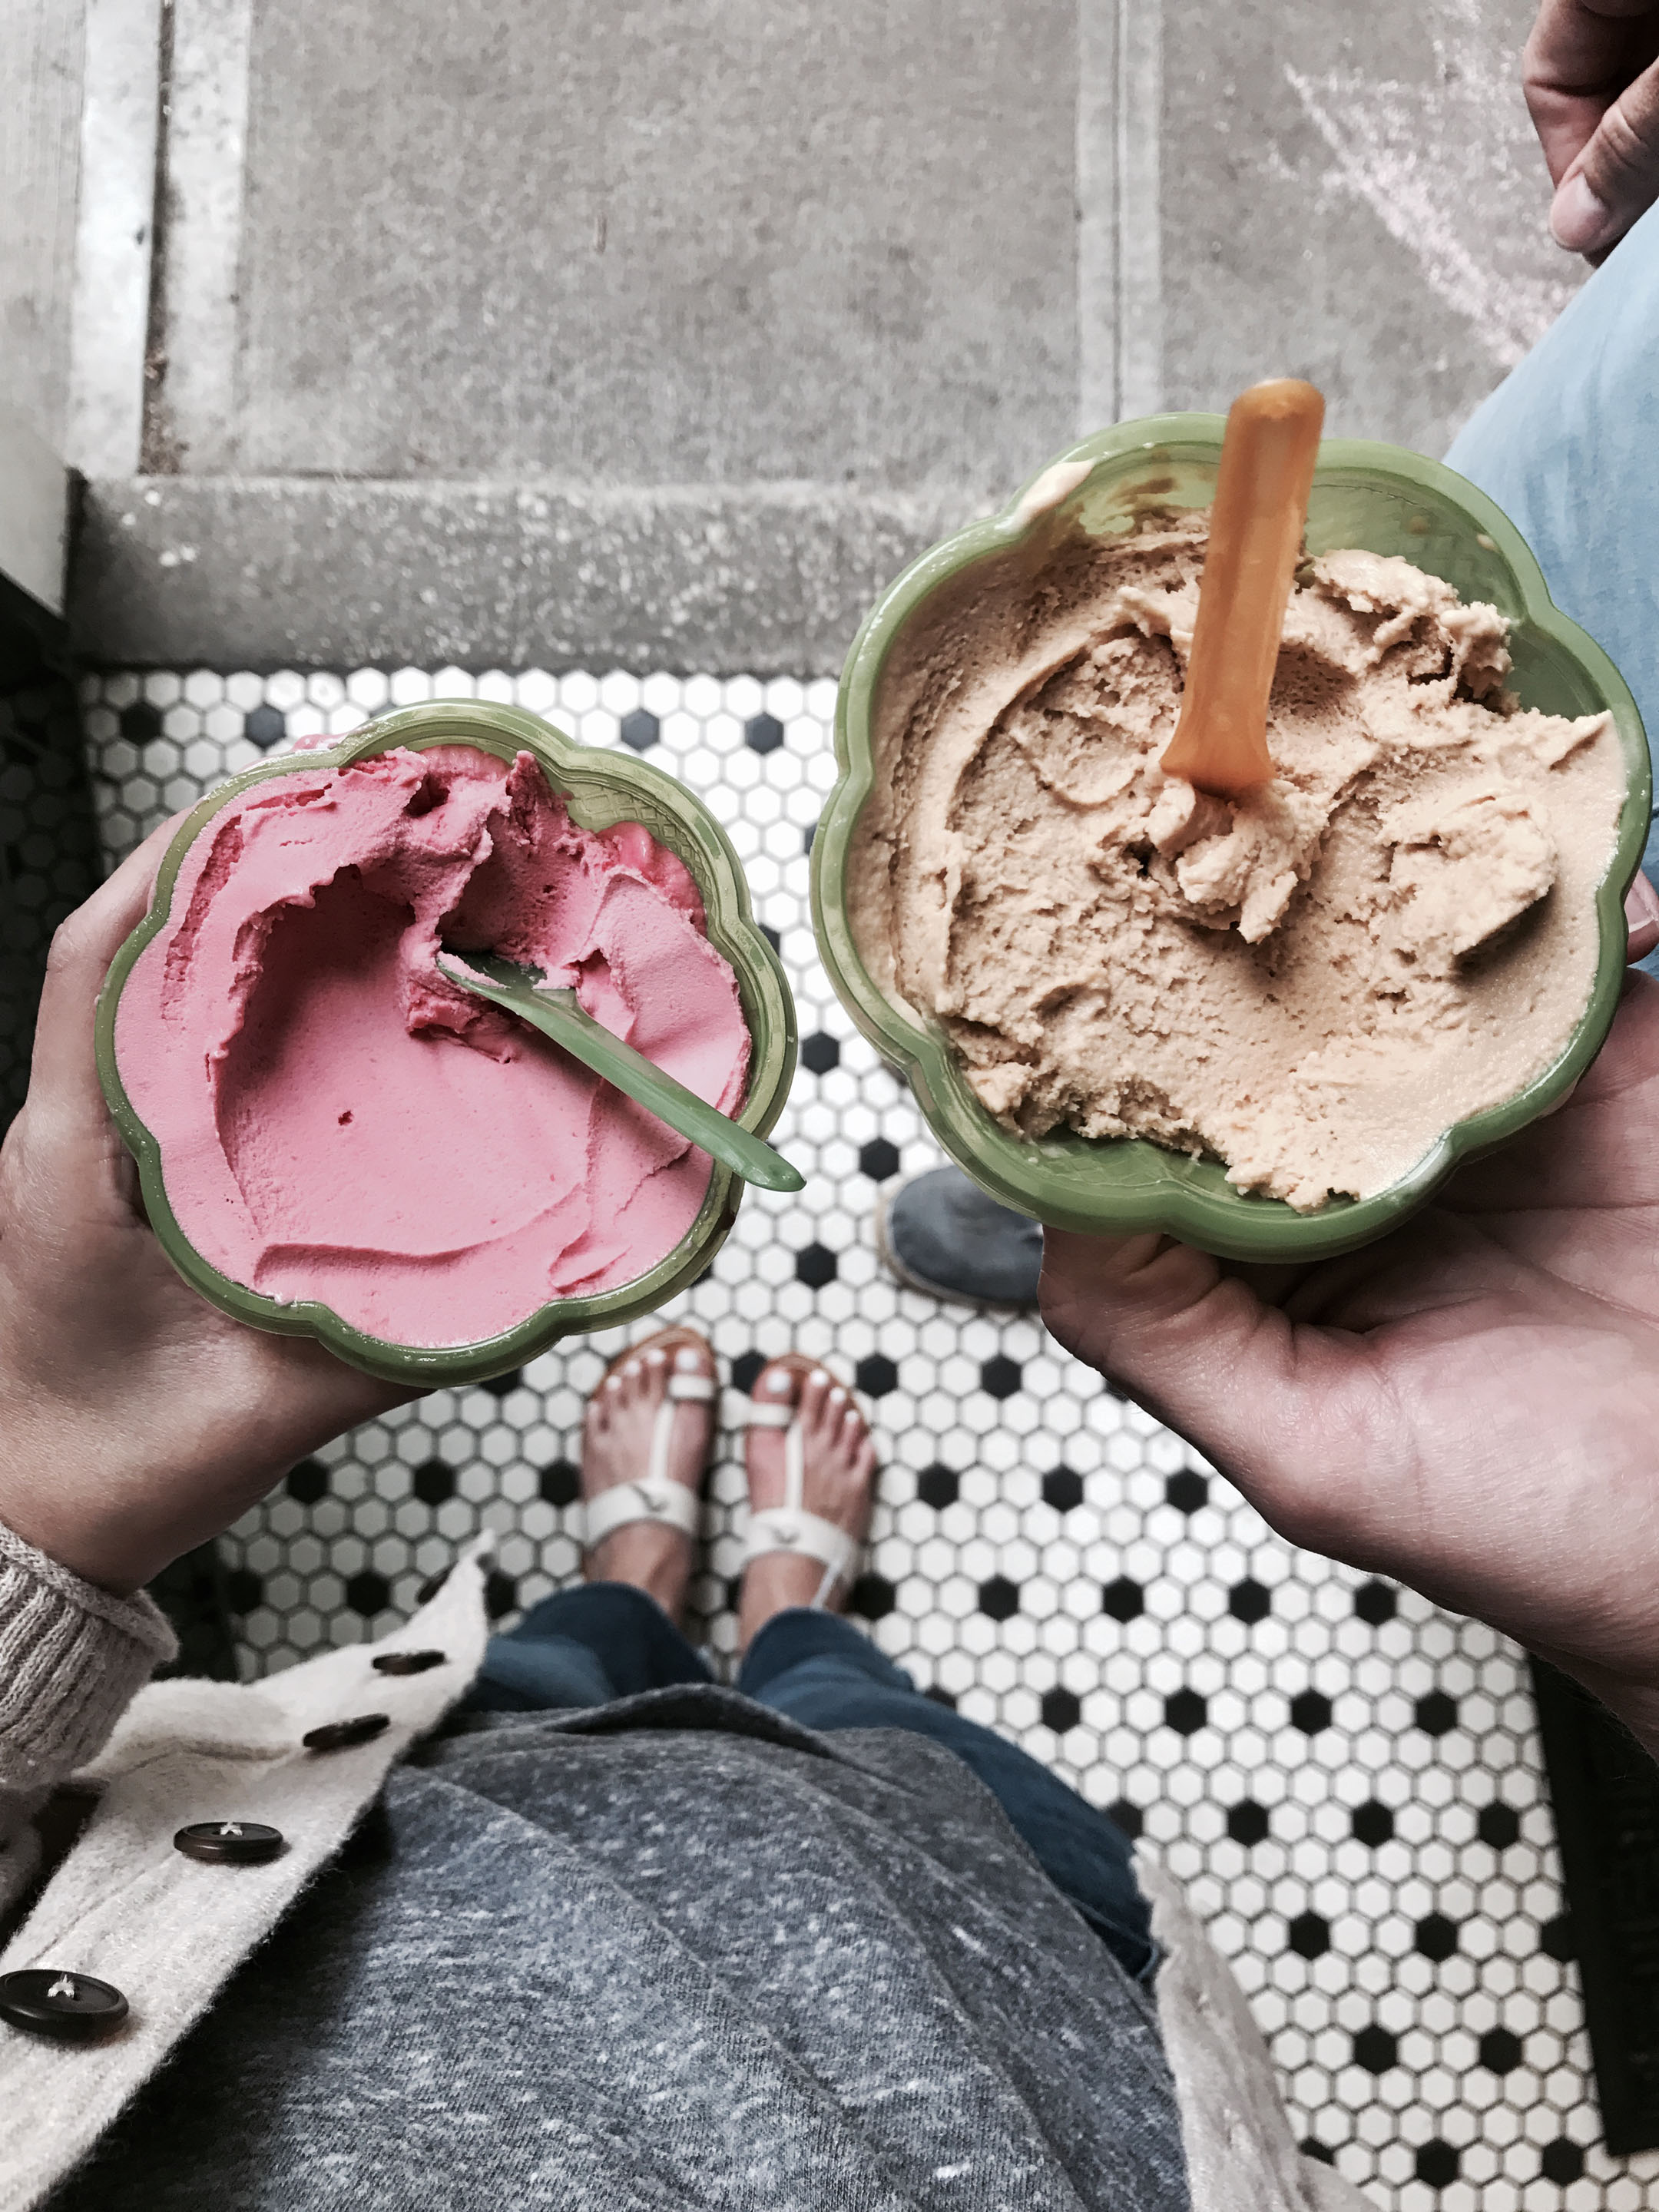 Rasberry sorbet and salted caramel gelato